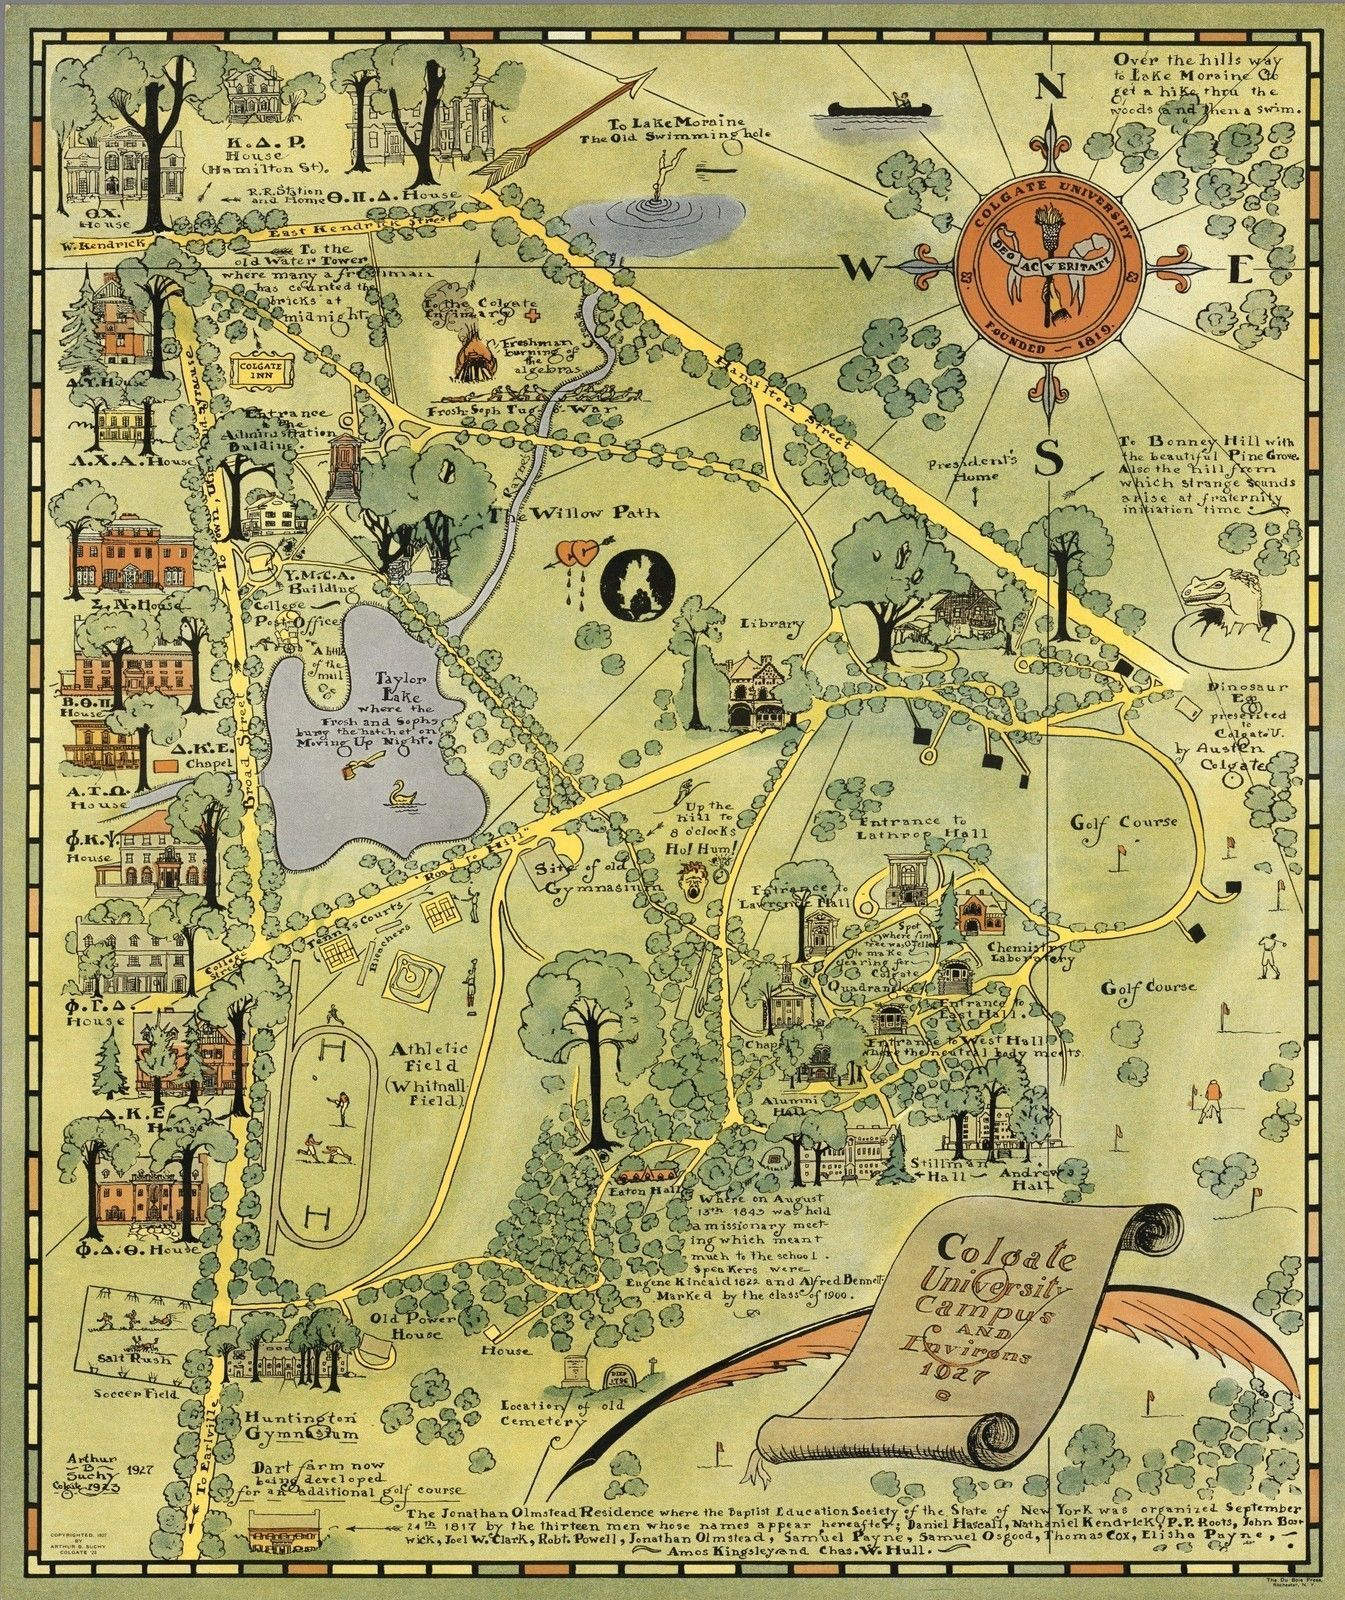 1927 Pictorial Map Colgate University Campus Ny New York Environs